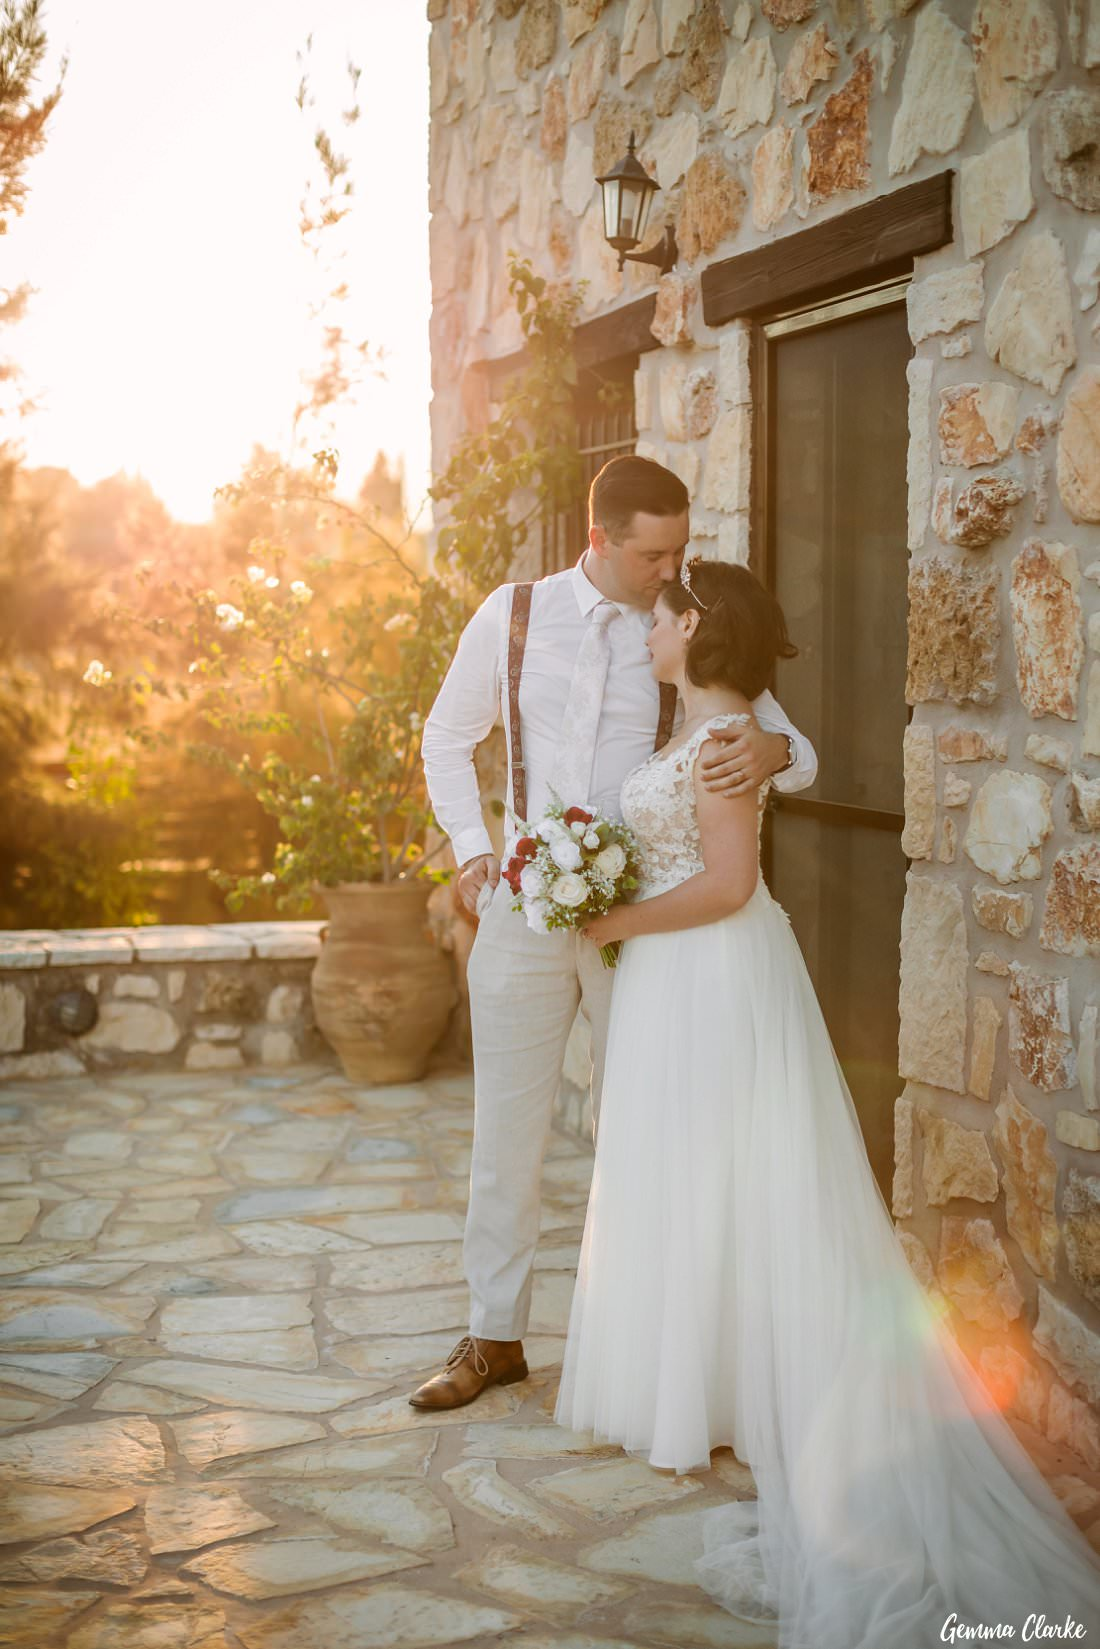 Another beautiful moment as the groom kisses the bride's forehead at their Greek Villa Wedding